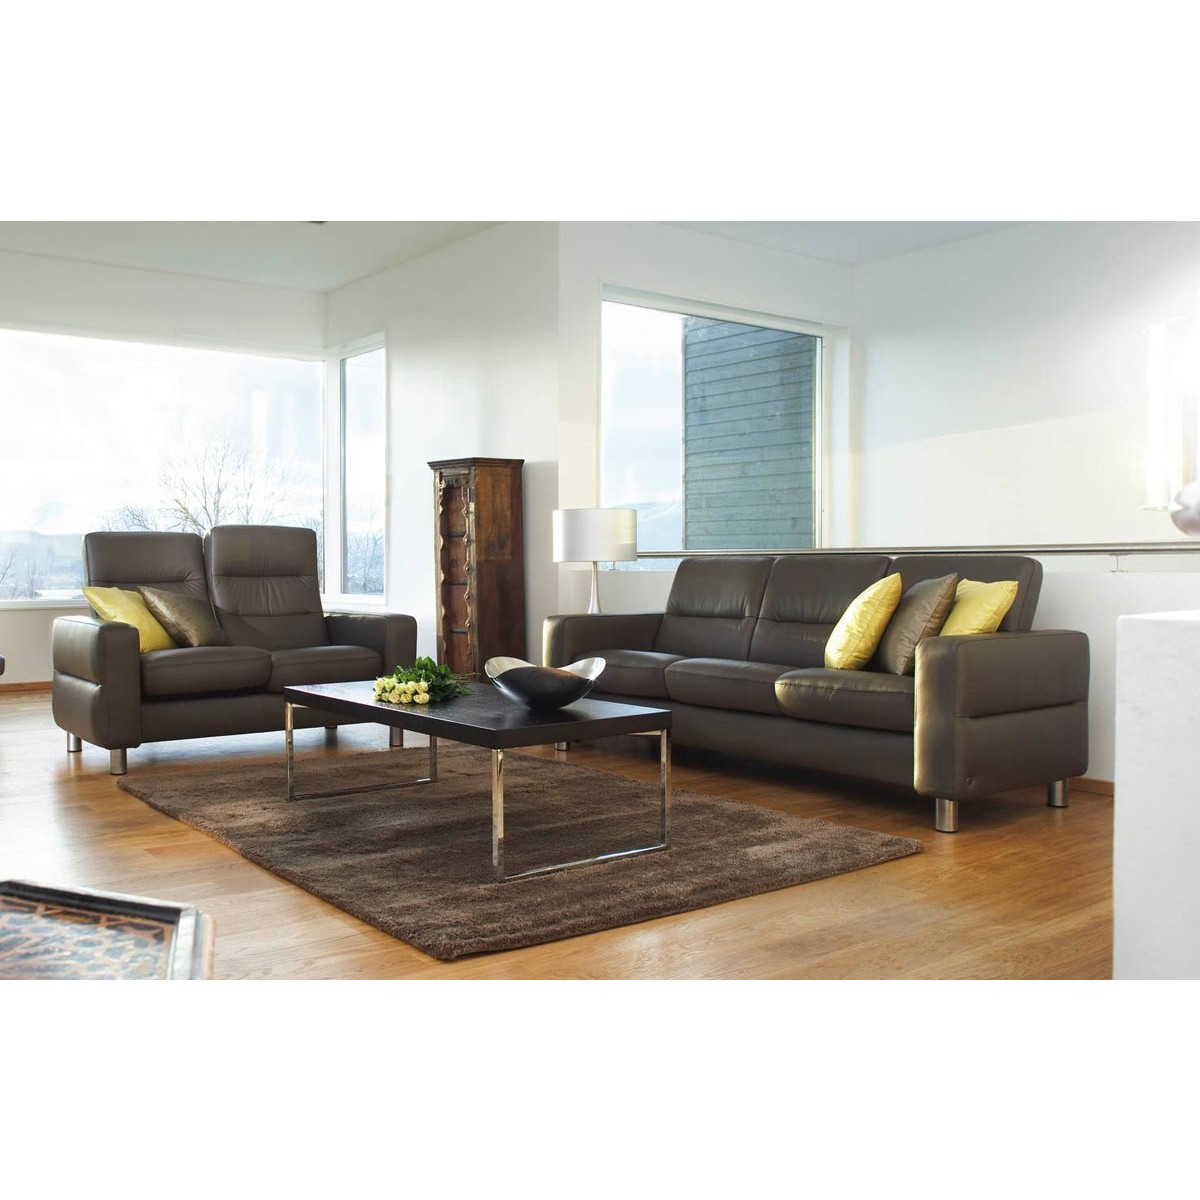 Stressless Wave Sofa Reviews Stressless Wave High Back Sofa From 3 995 00 By